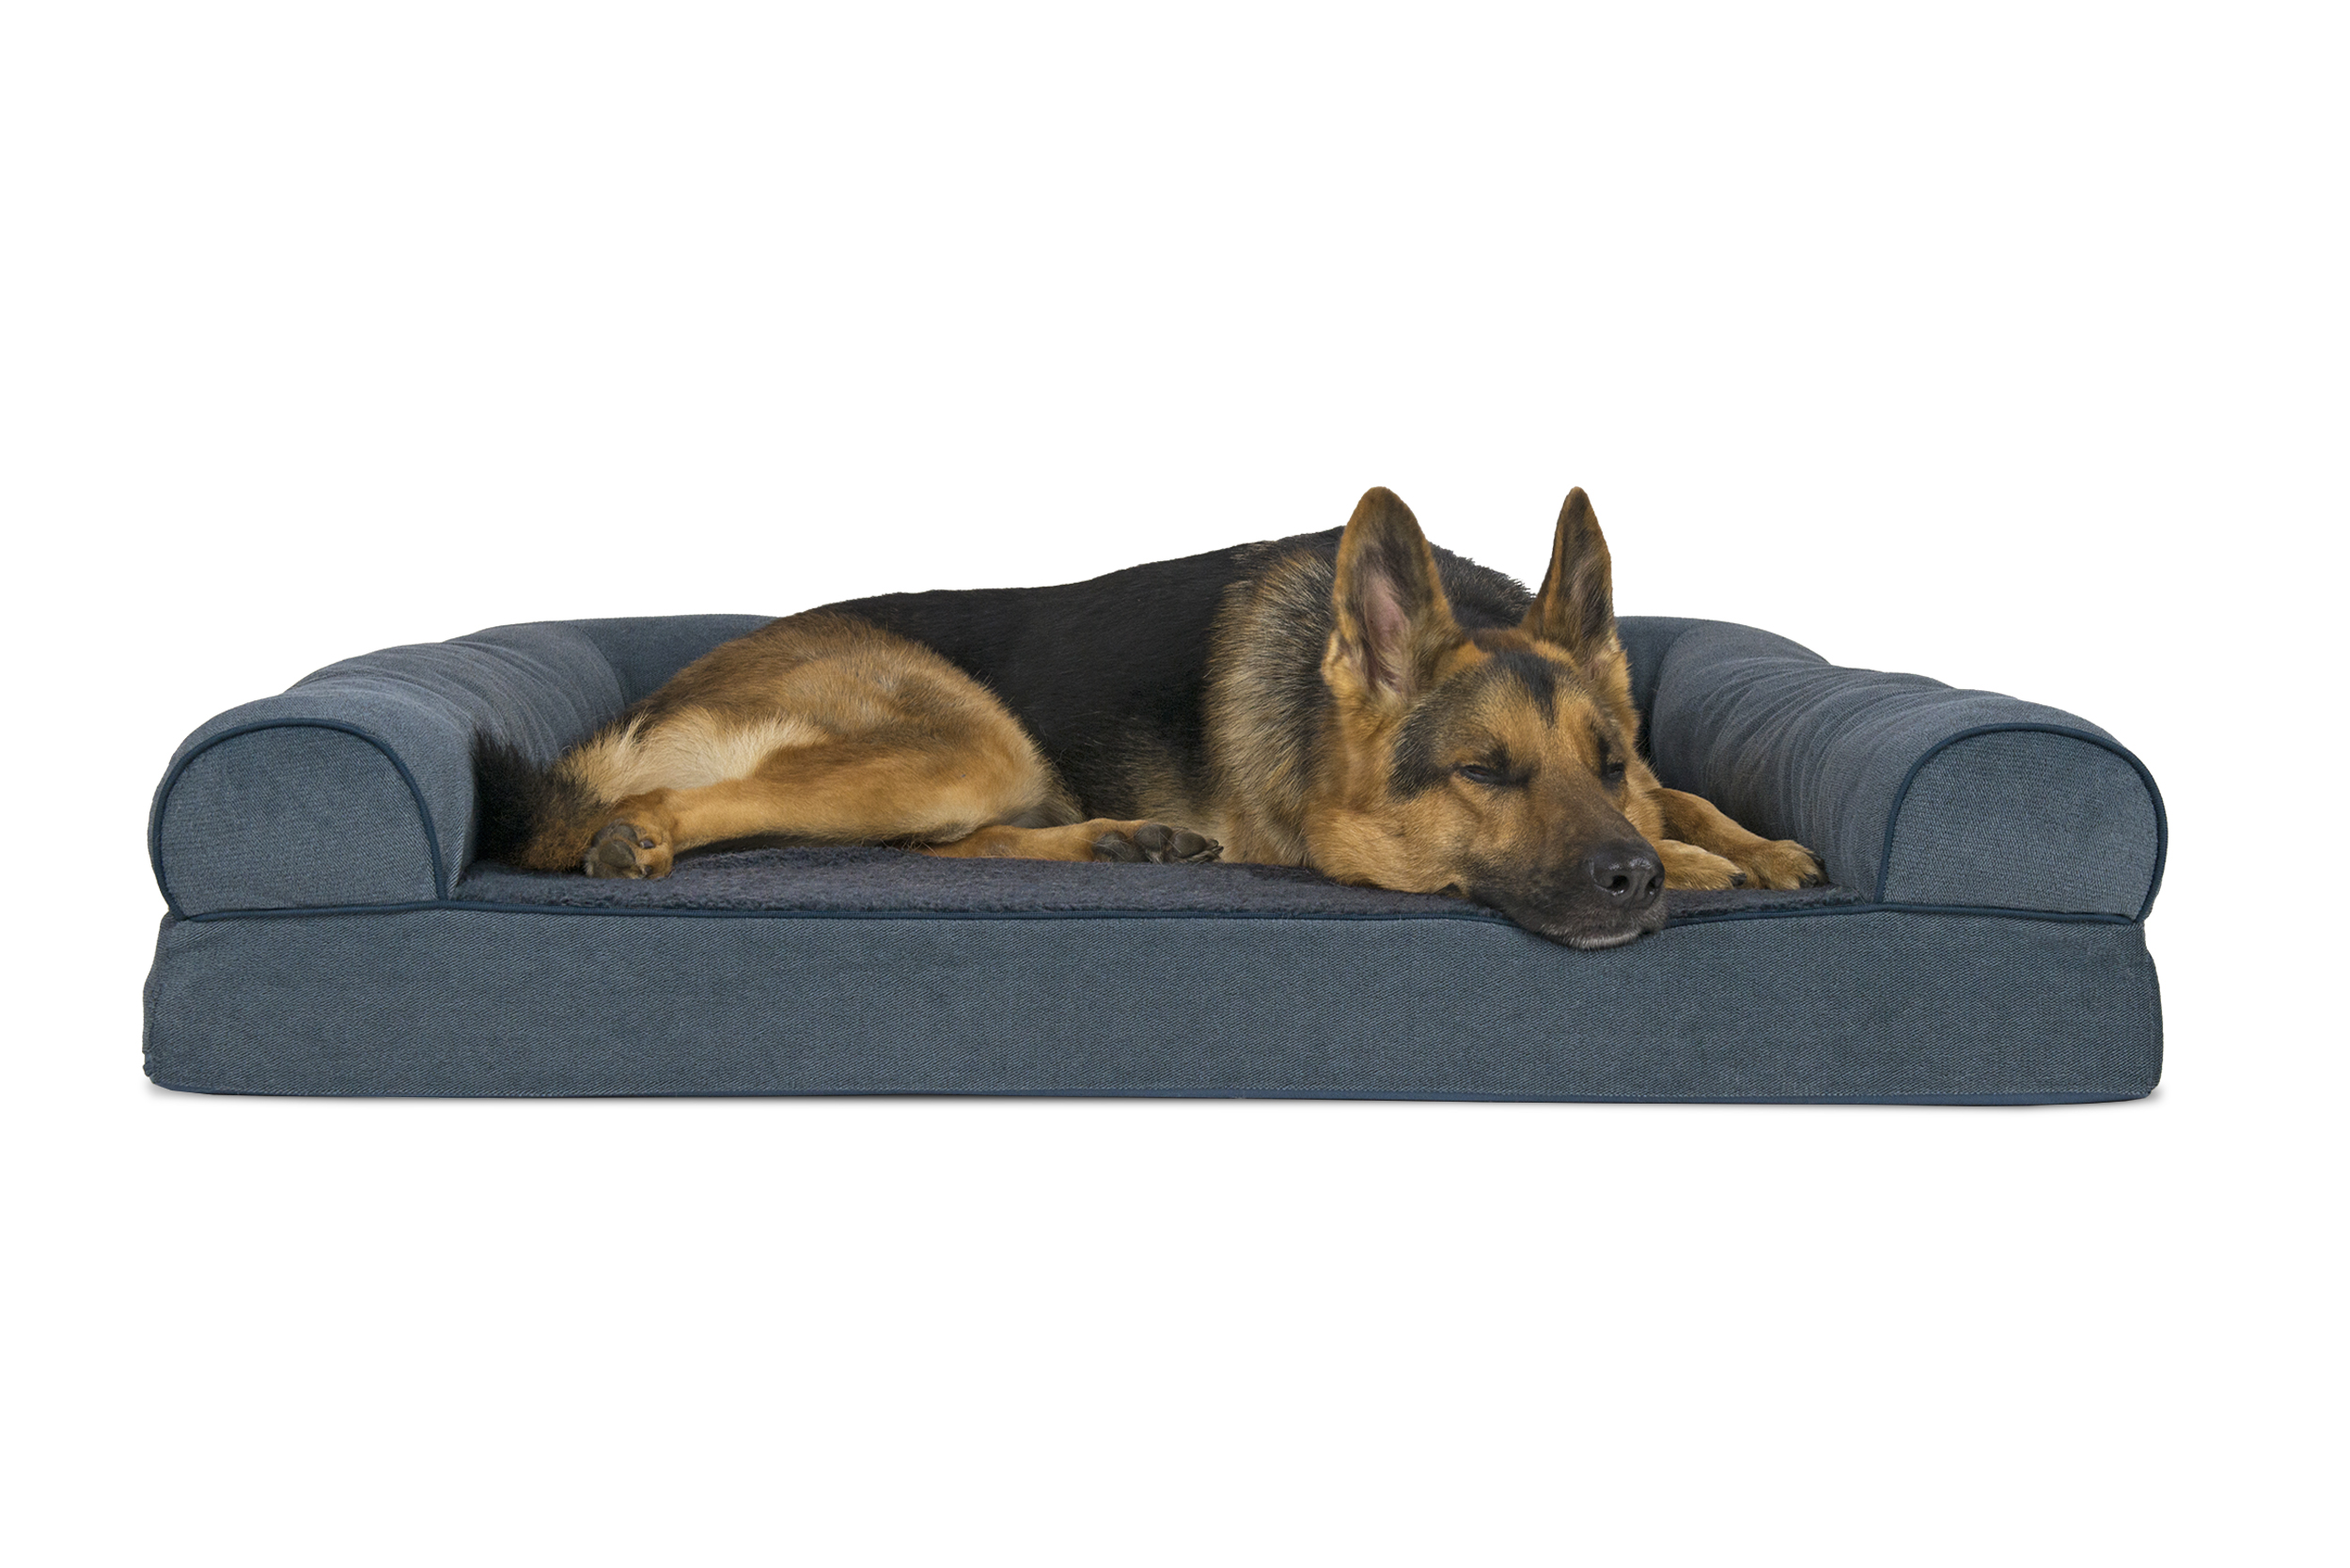 soft sofa dog bed velvet tufted sectional faux fleece and chenille woven orthopedic pet